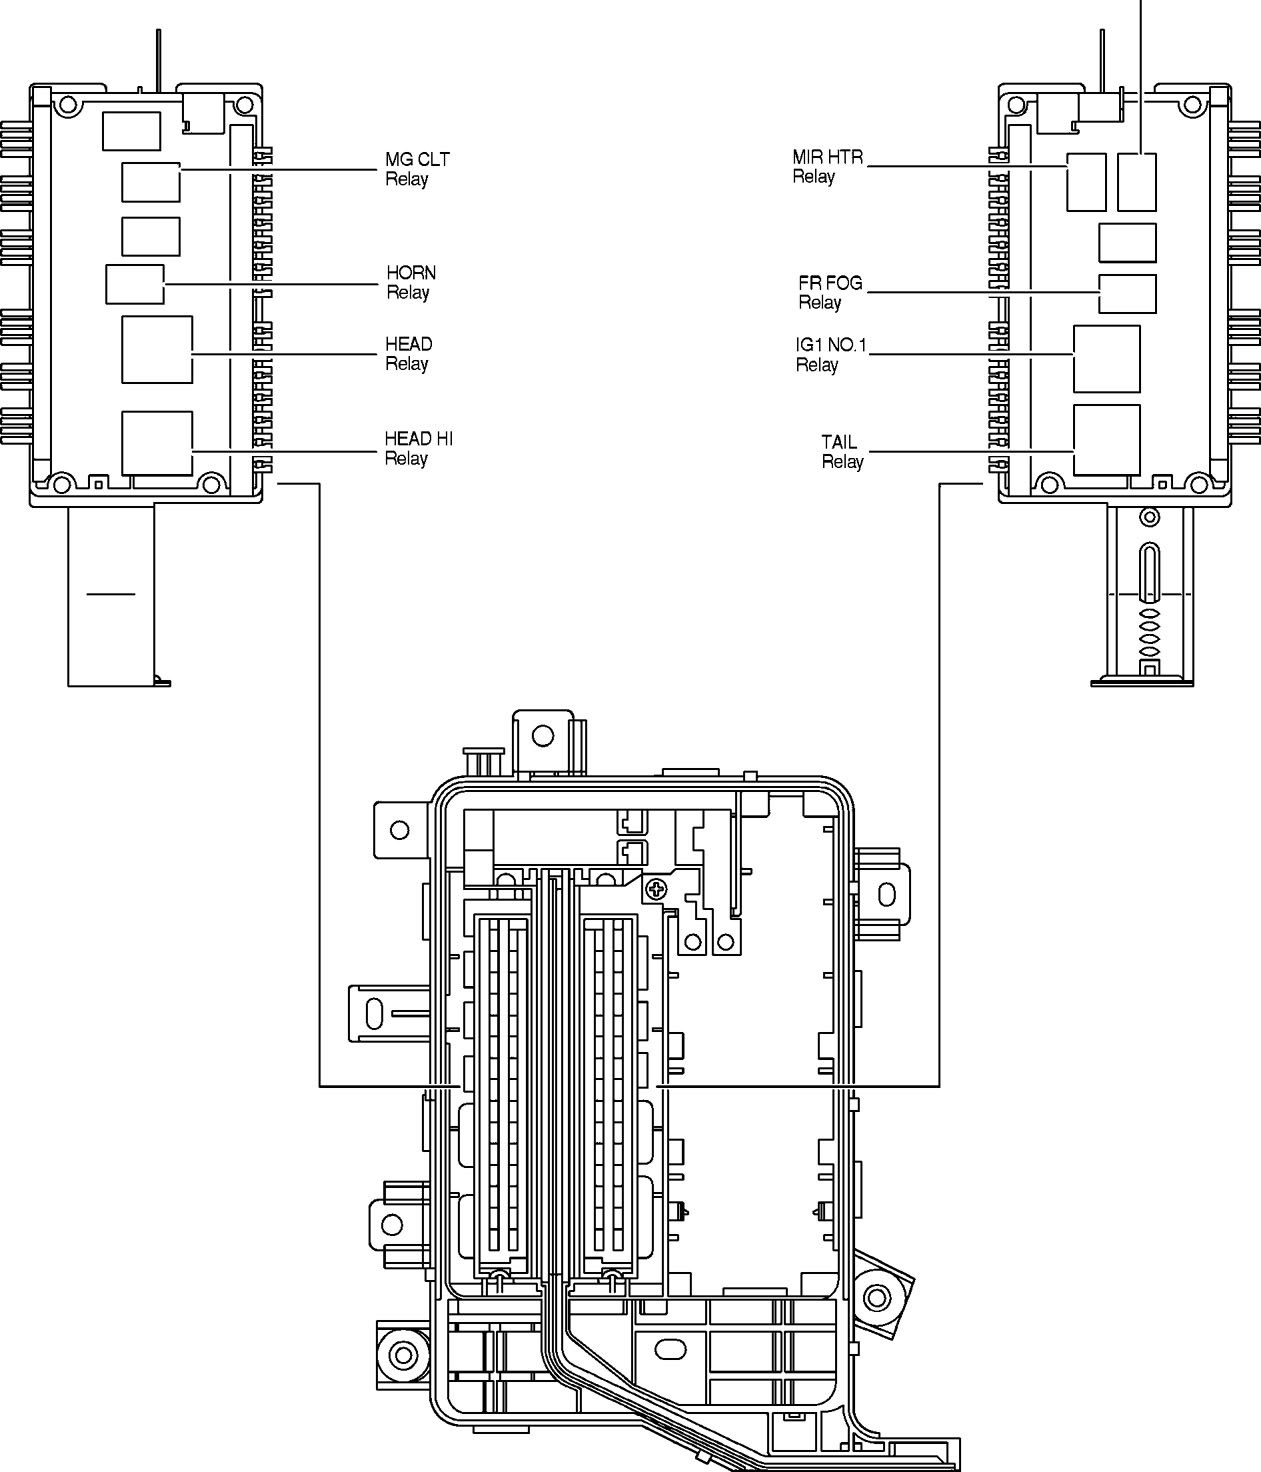 Tvr Tuscan Wiring Diagram